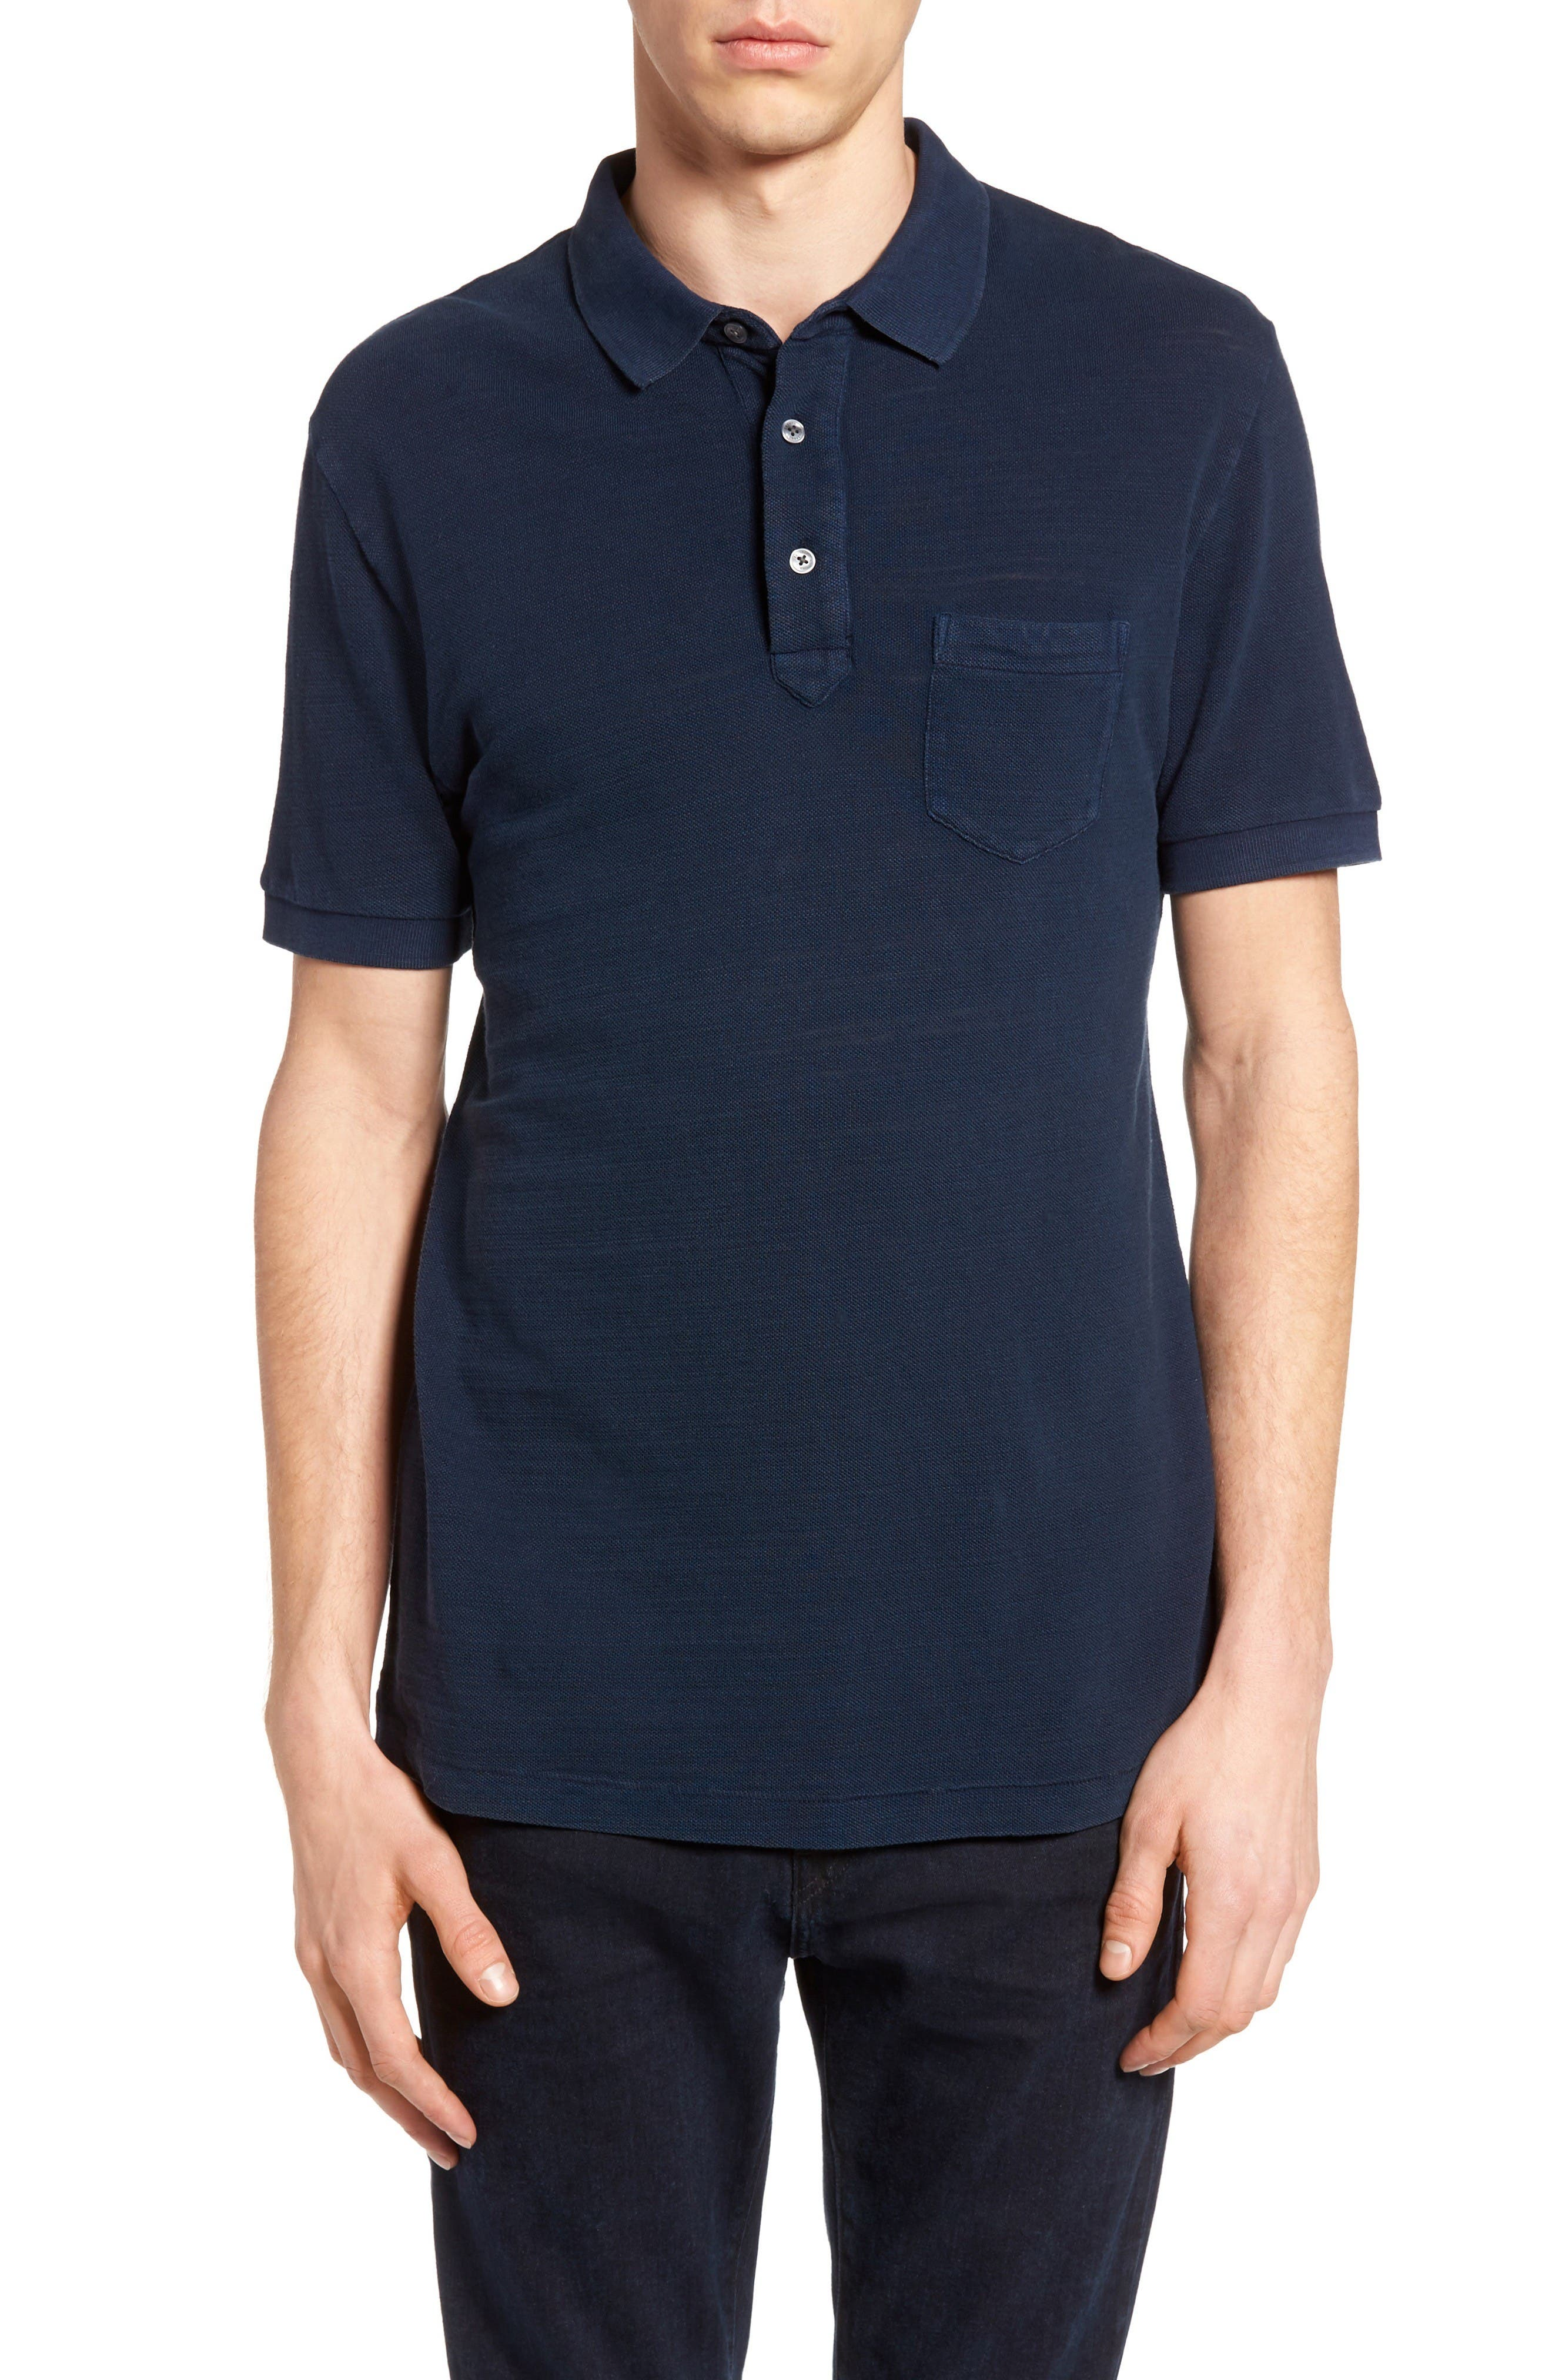 Main Image - French Connection Slub Knit Polo